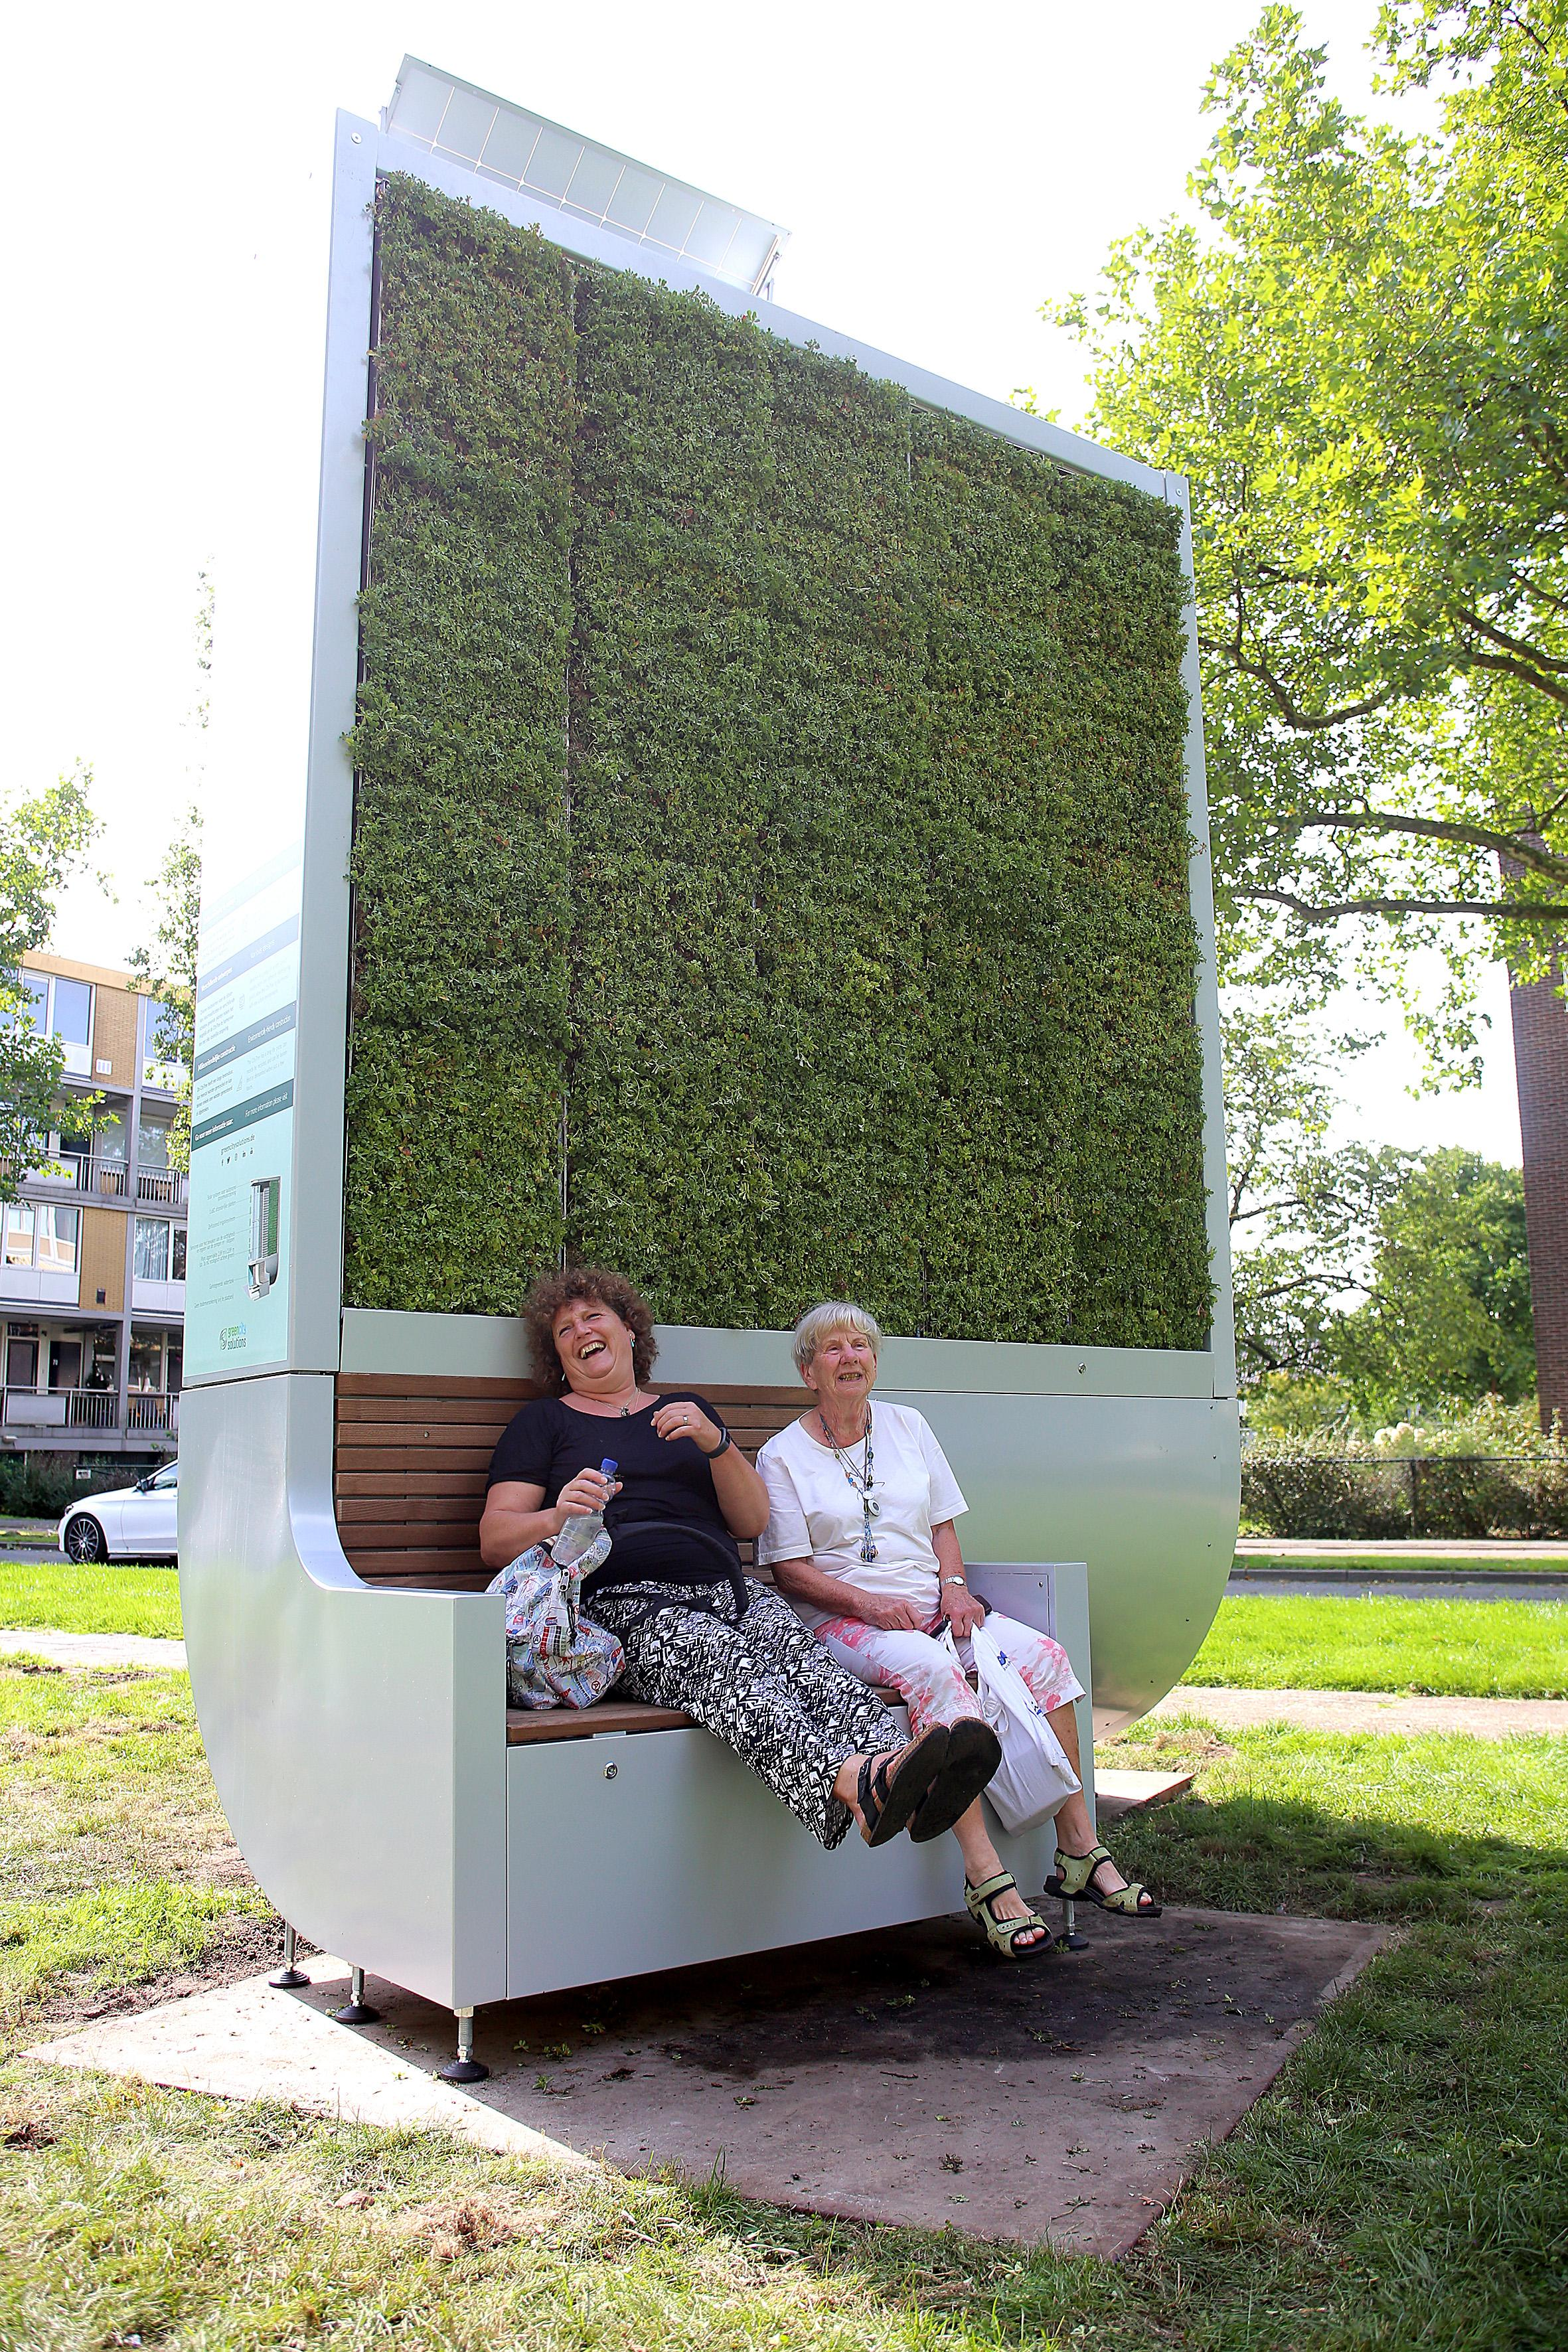 'Plaats grote moswand in Hoorn'